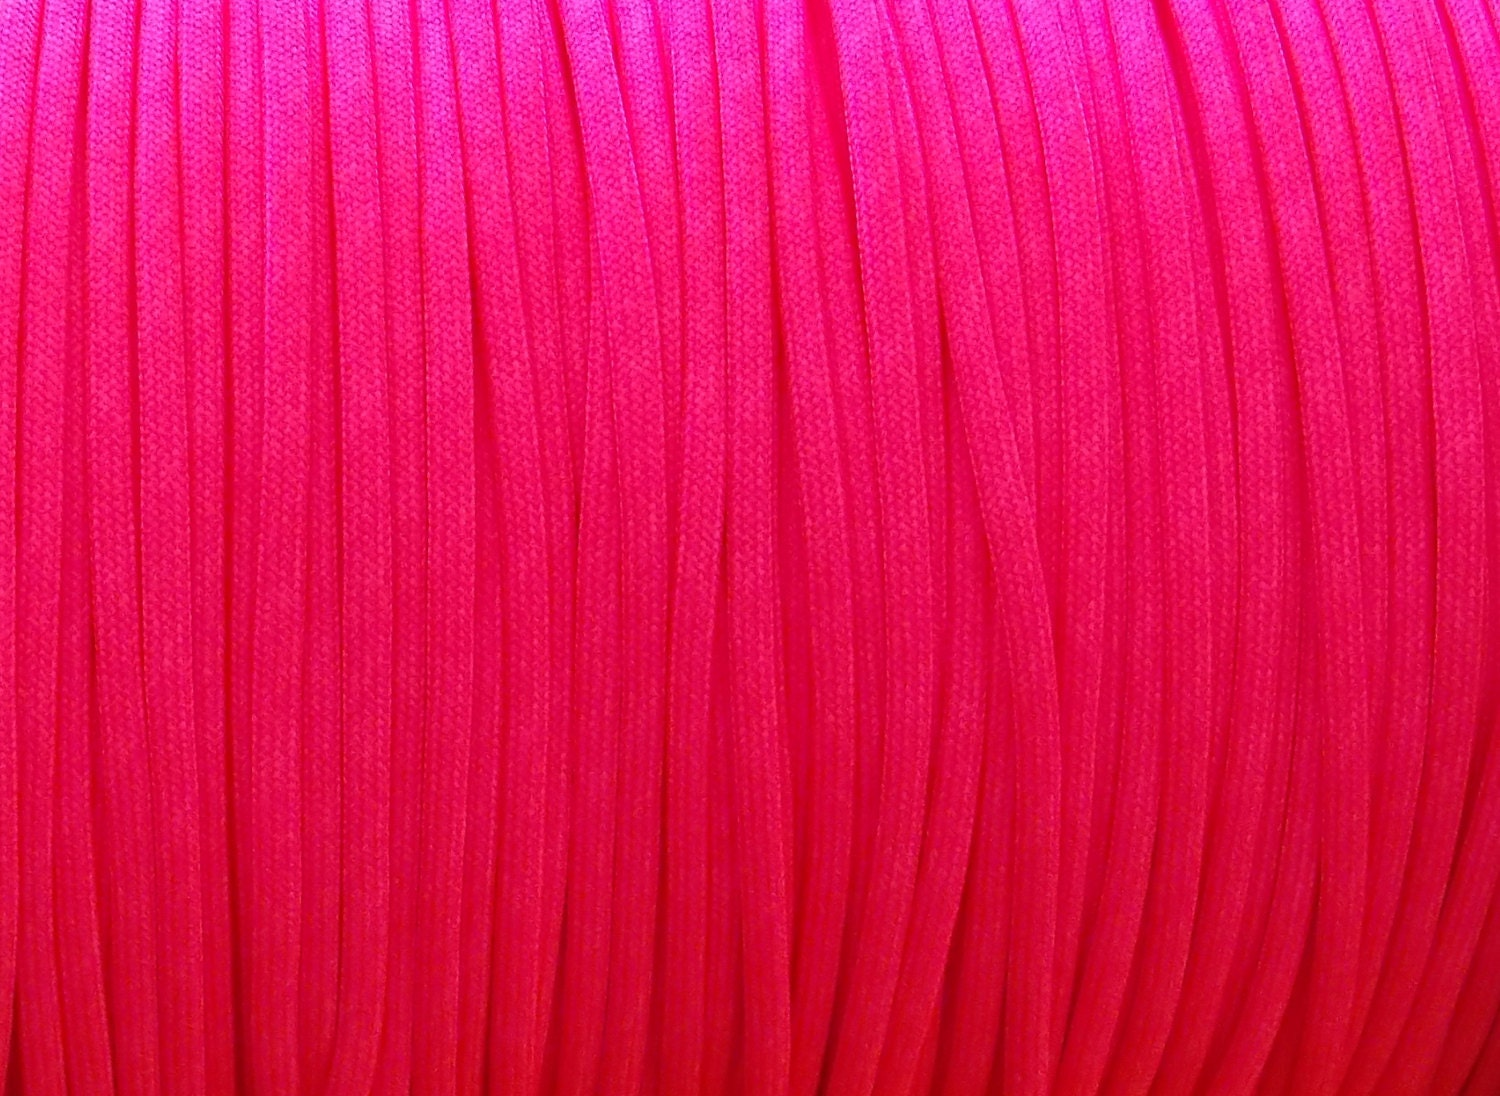 Neon pink bright color paracord solid neon color 7 for Paracord wallpaper